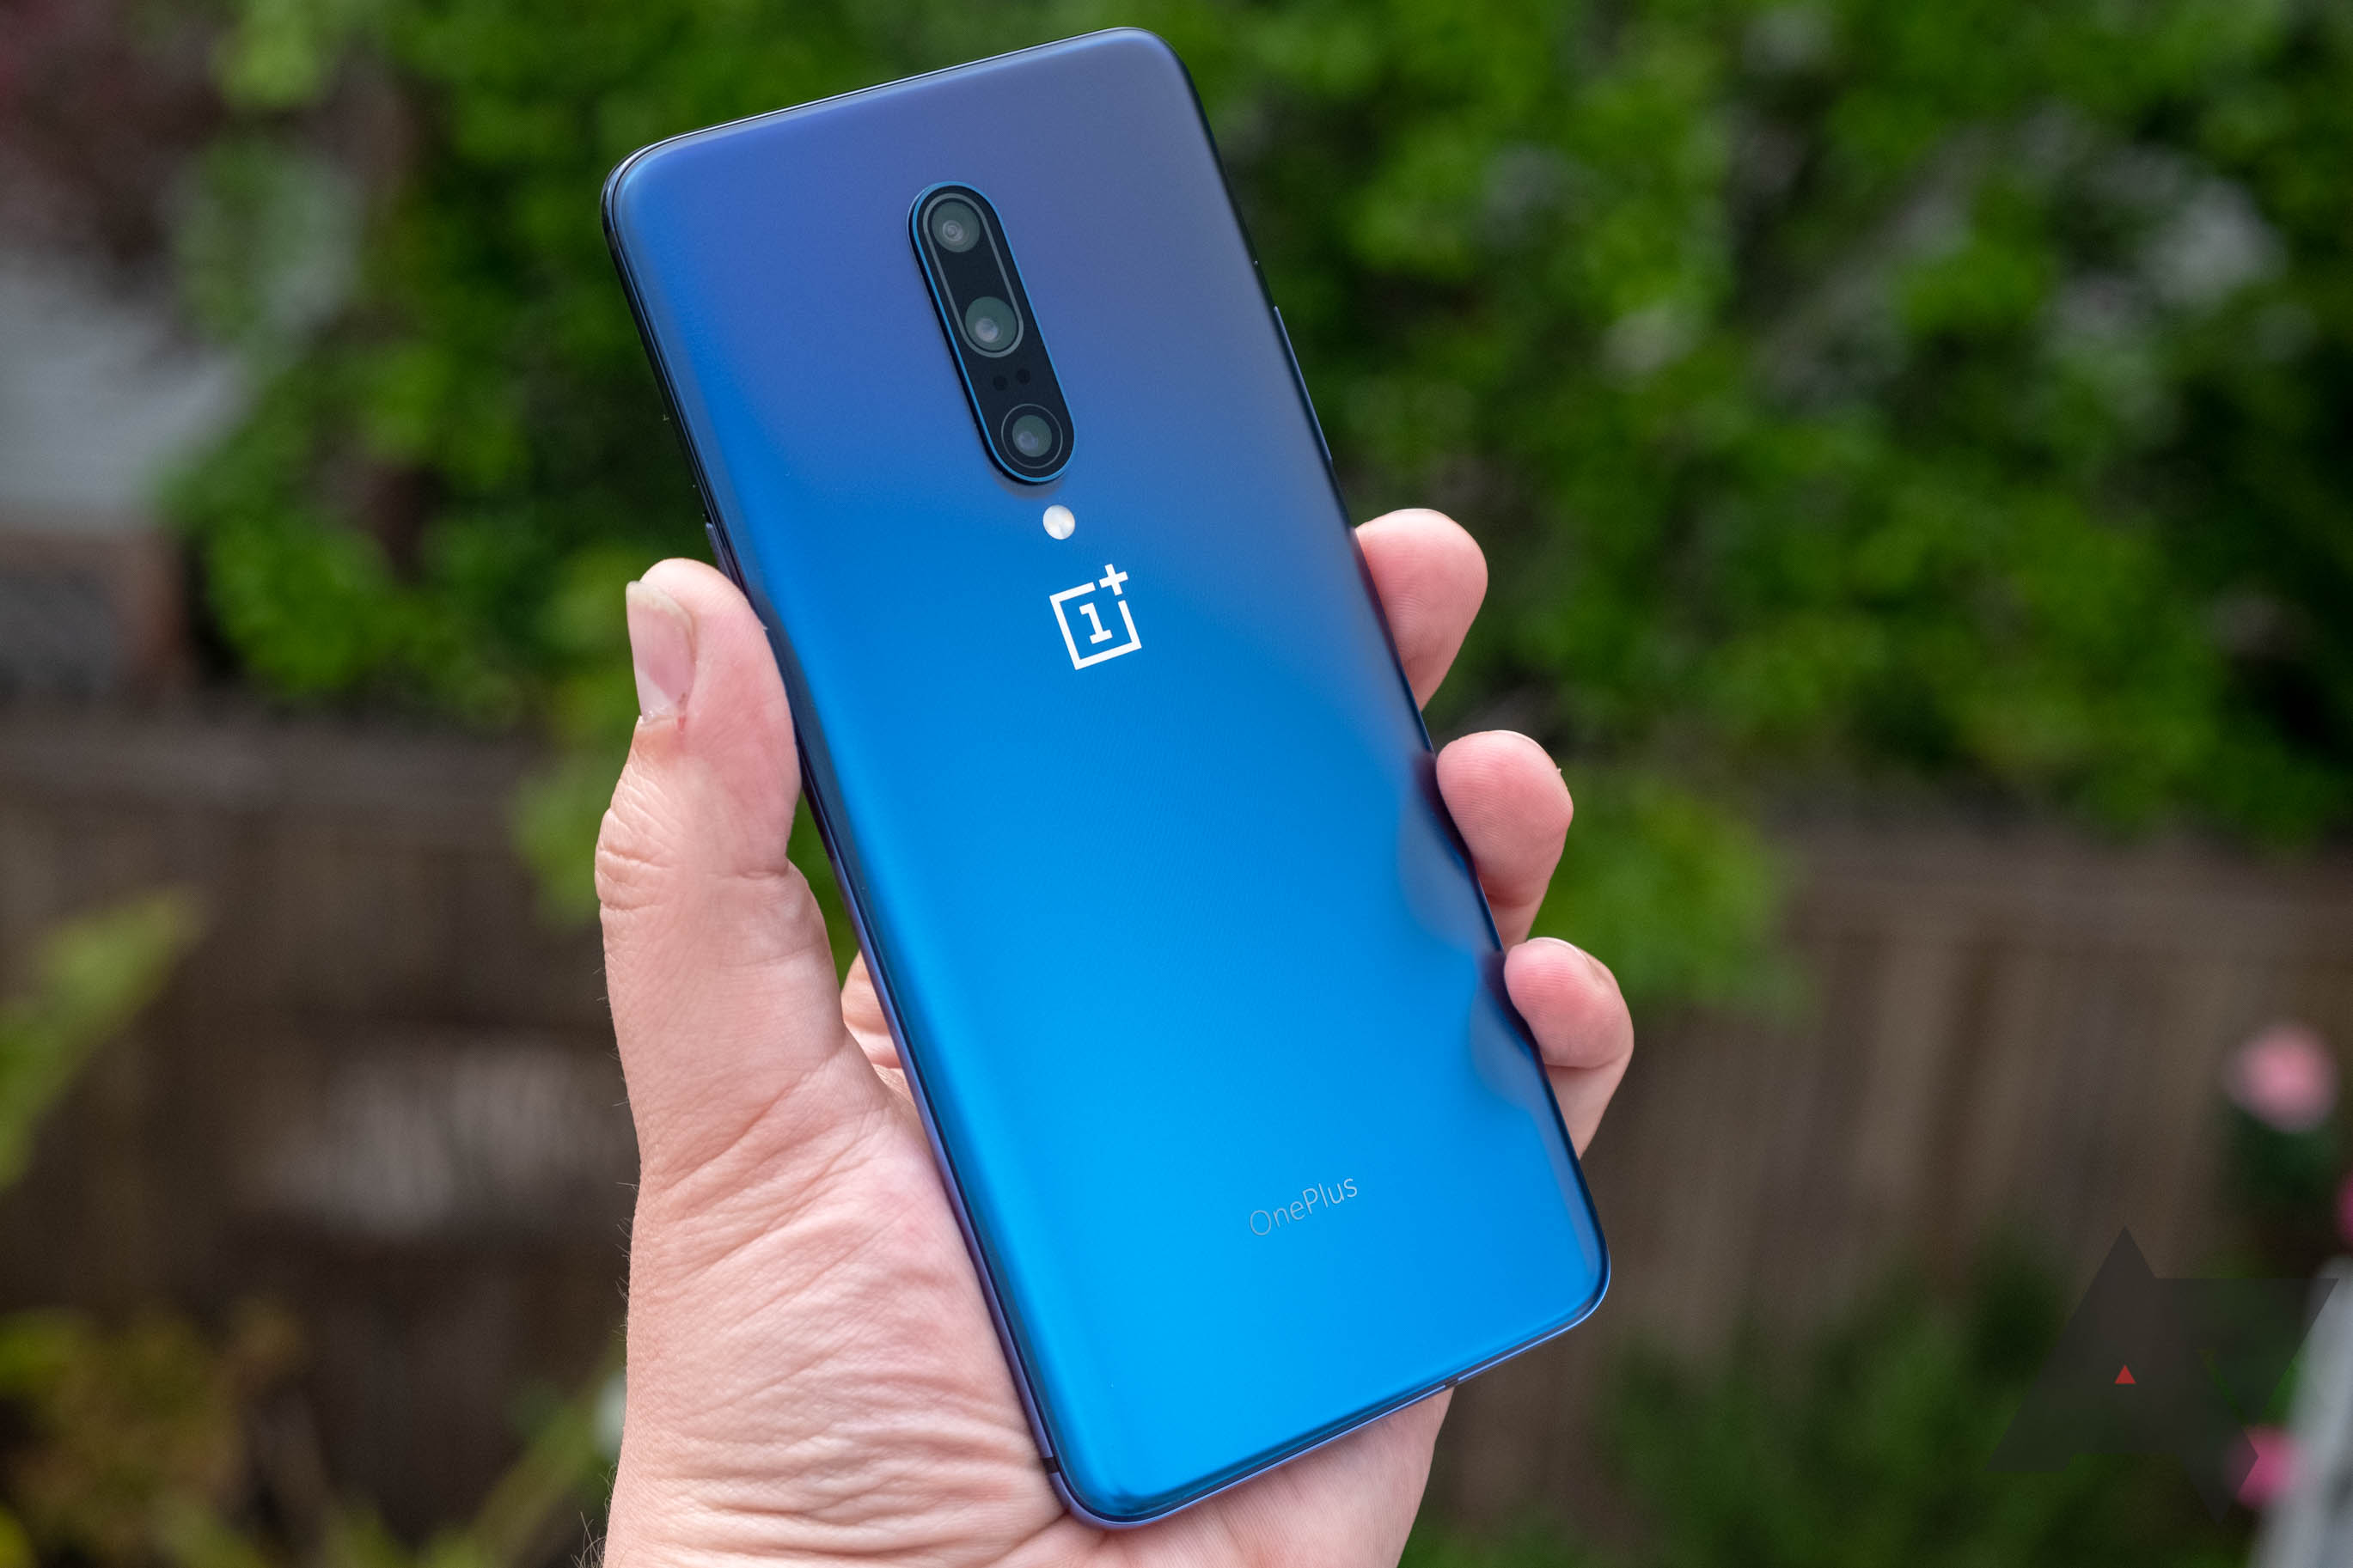 You'll lose HD Netflix on the OnePlus 7 Pro if you unlock